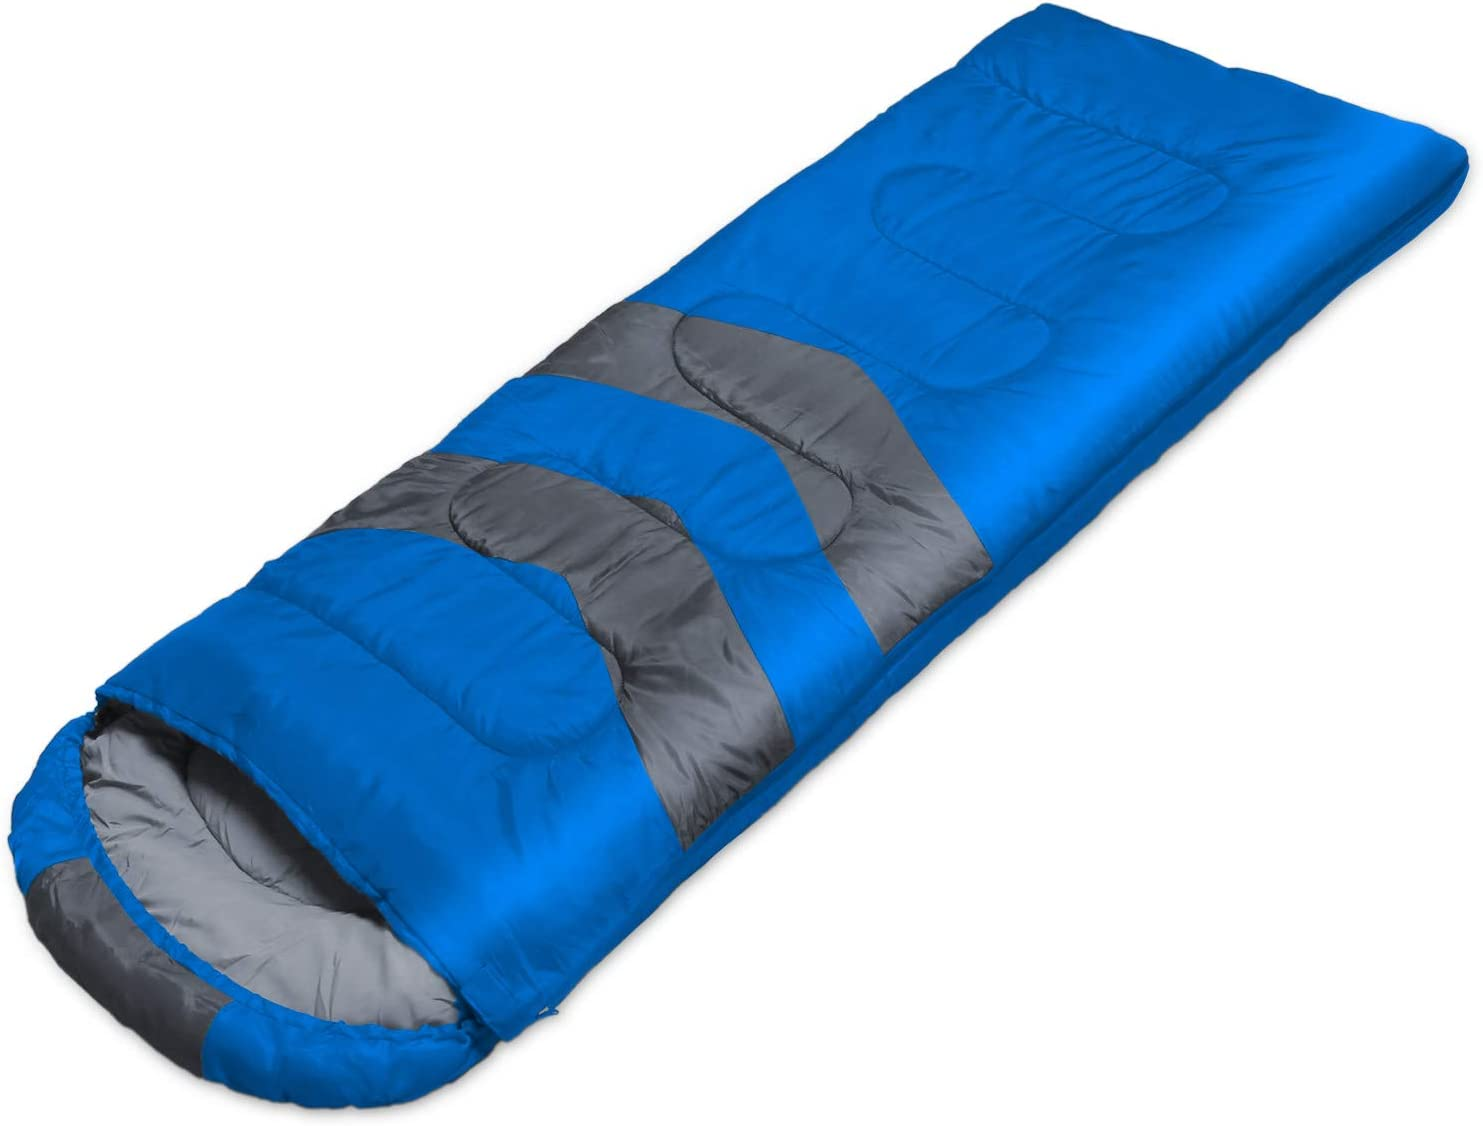 BESTEAM Double Sleeping Bag Backpacking, Hiking, Family Camping, Traveling. Queen Size XL Truck, Tent, Sleeping Pad. 2 Person Waterproof Sleeping Bag Adults Teens. 3 Seasons